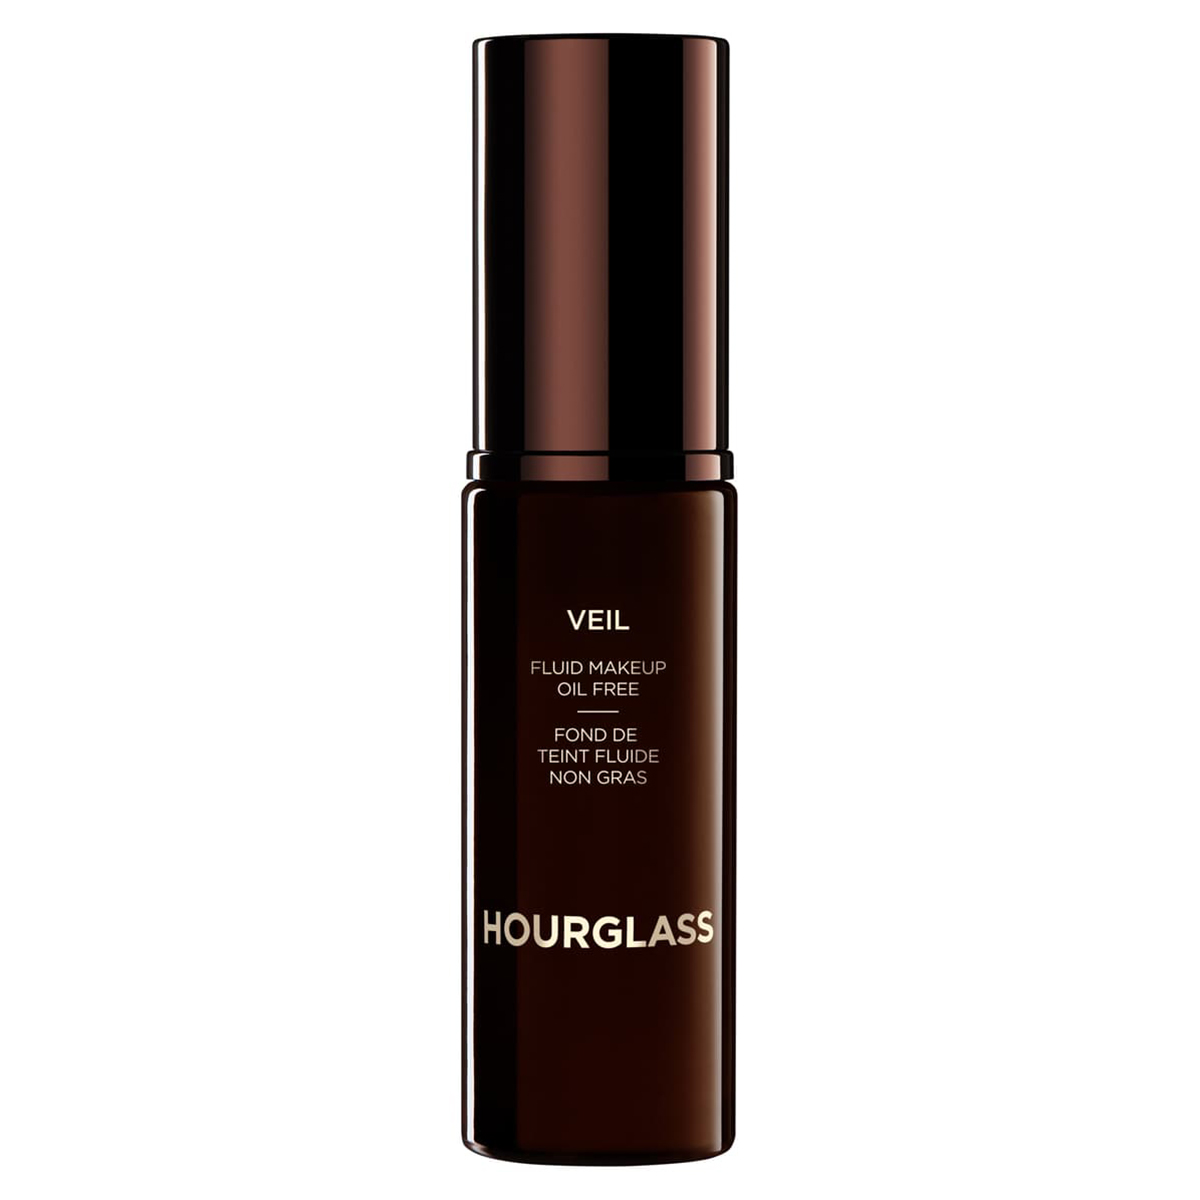 HOURGLASS Veil Fluid Makeup Oil Free Broad Spectrum SPF 15